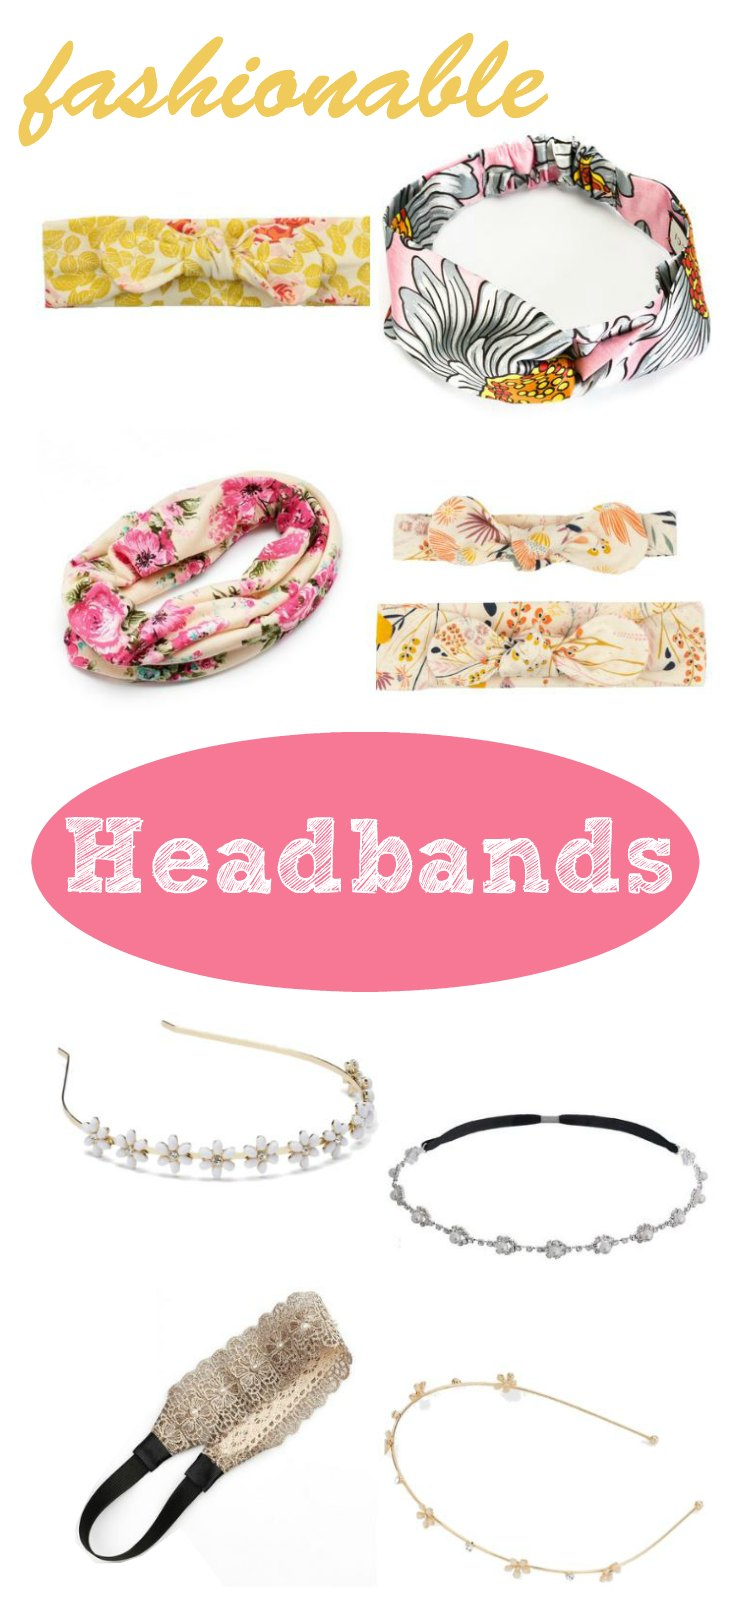 Fashion Accessories Headbands: headbands fashionable hair accessories for spring and summer the best casual, prom, wedding choices for women, teens, and even Mom-baby